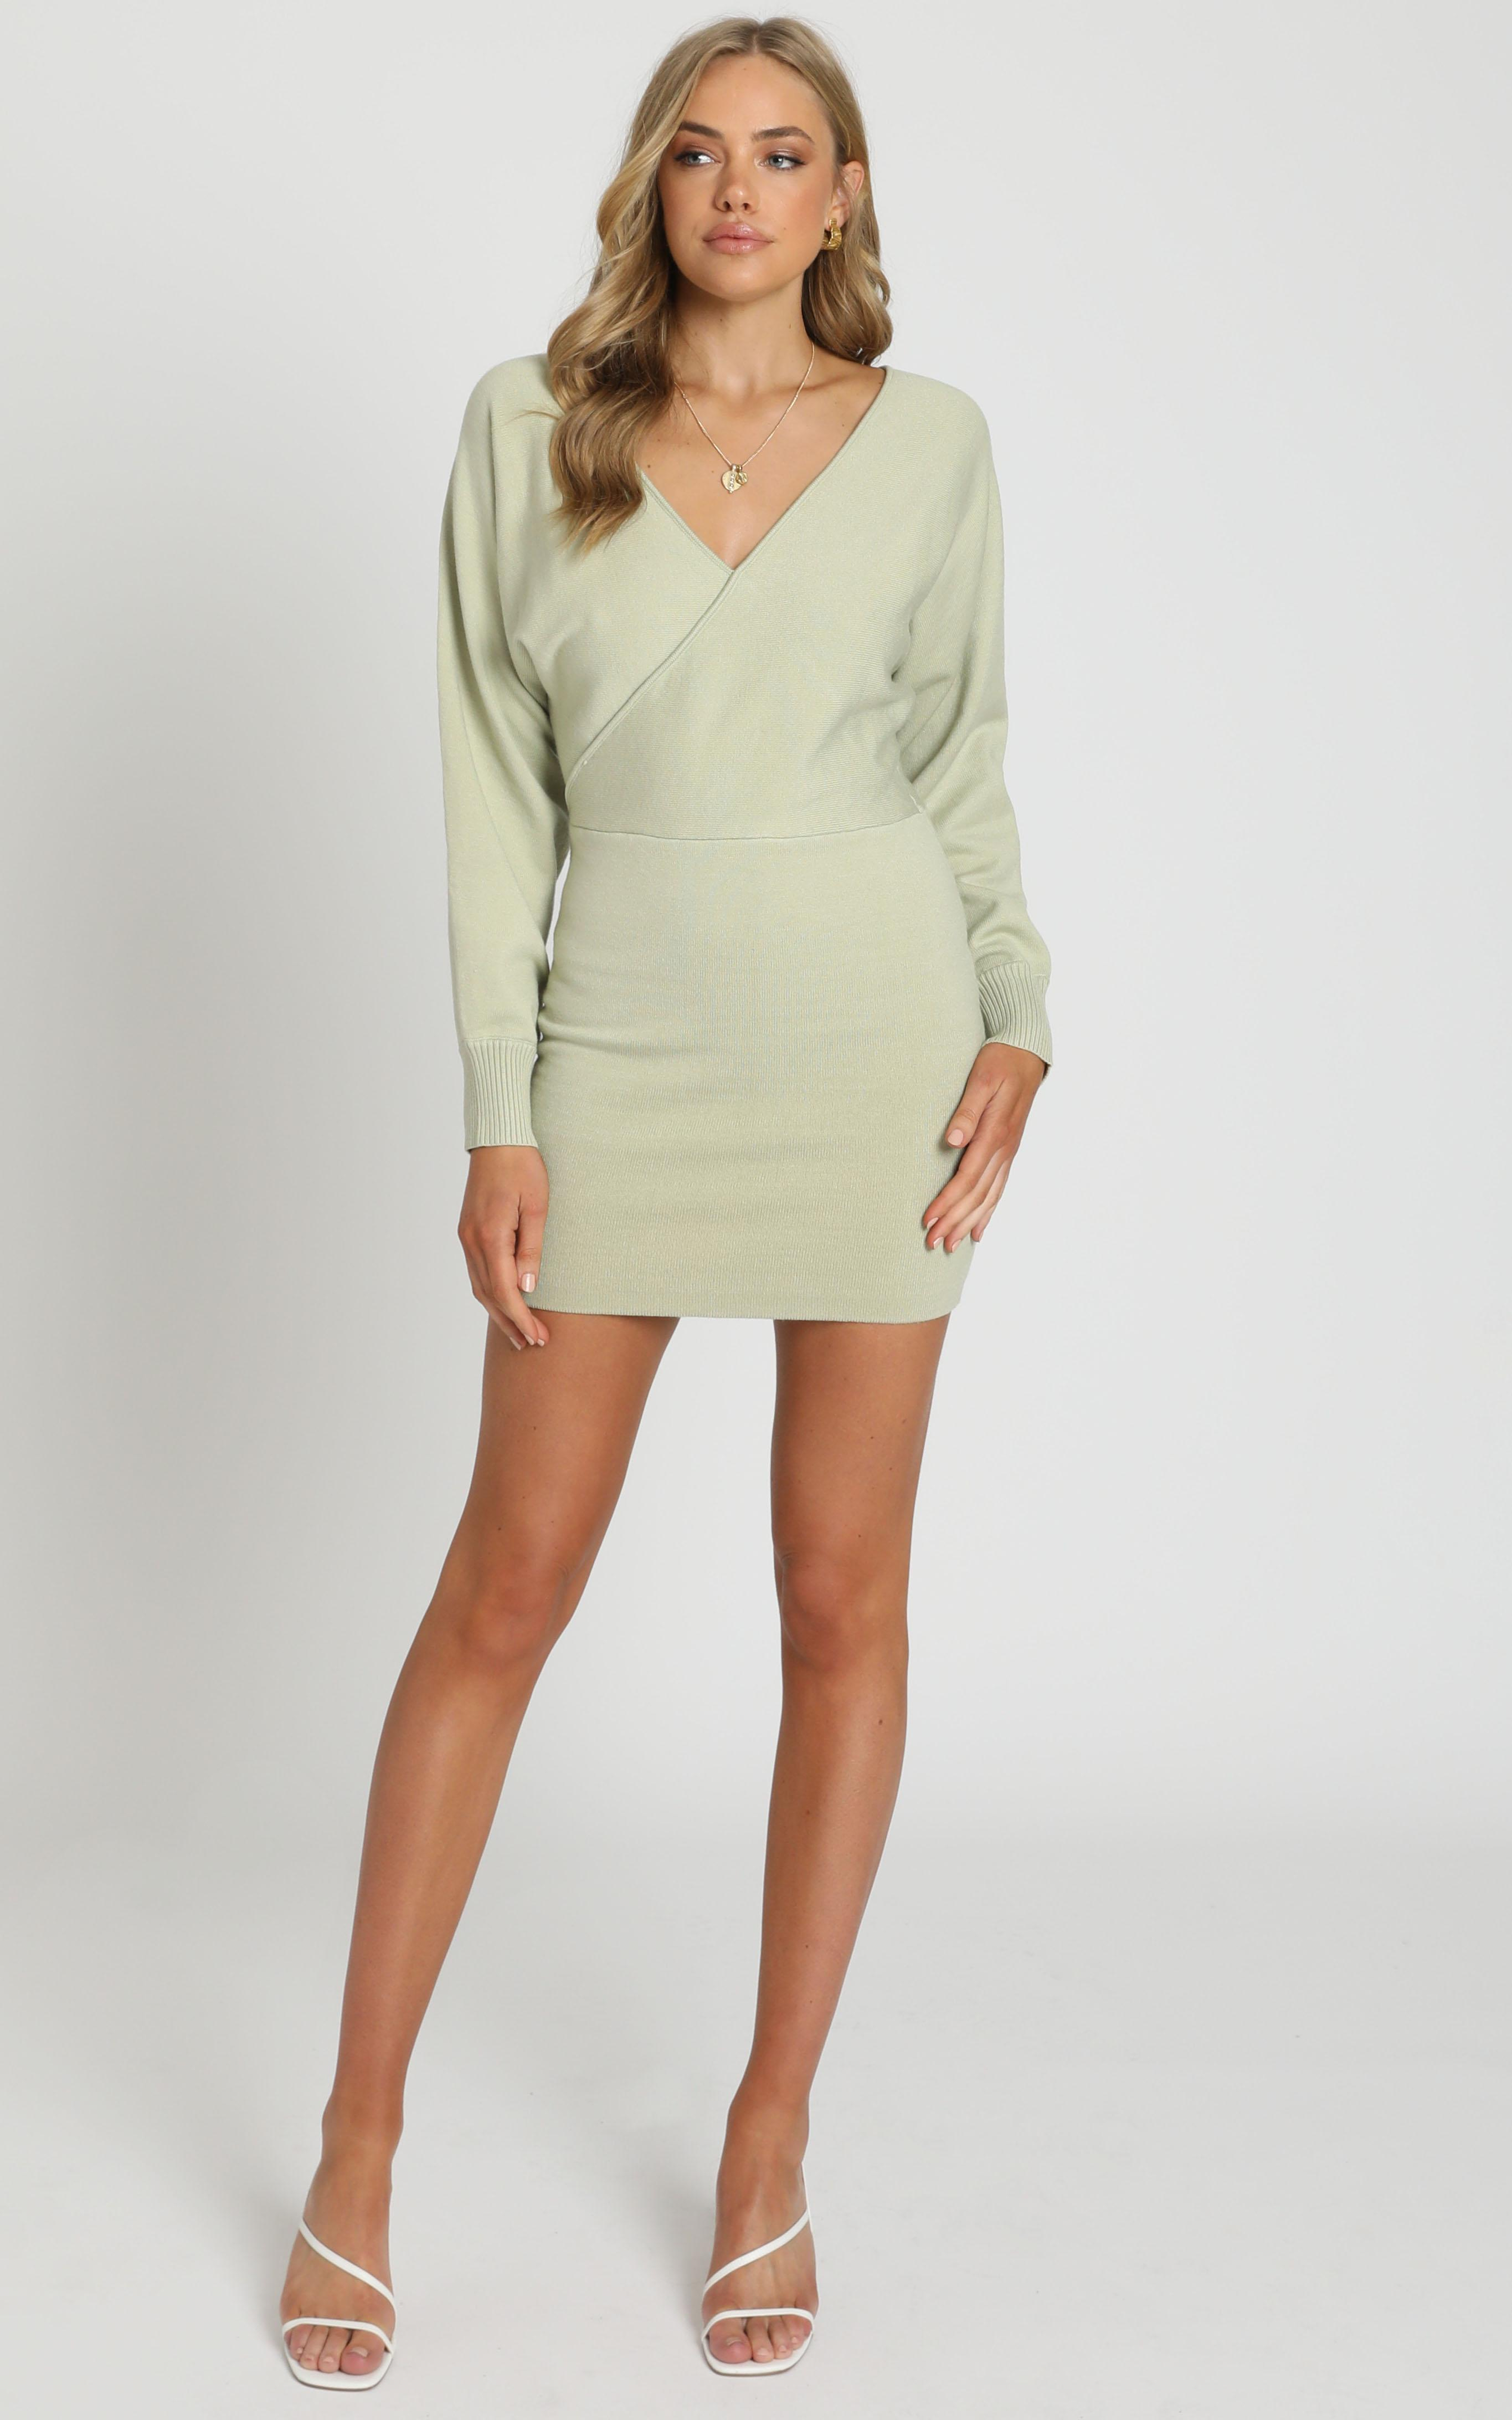 Midnight Confessions Knit Dress in Sage - XS/S, Sage, hi-res image number null